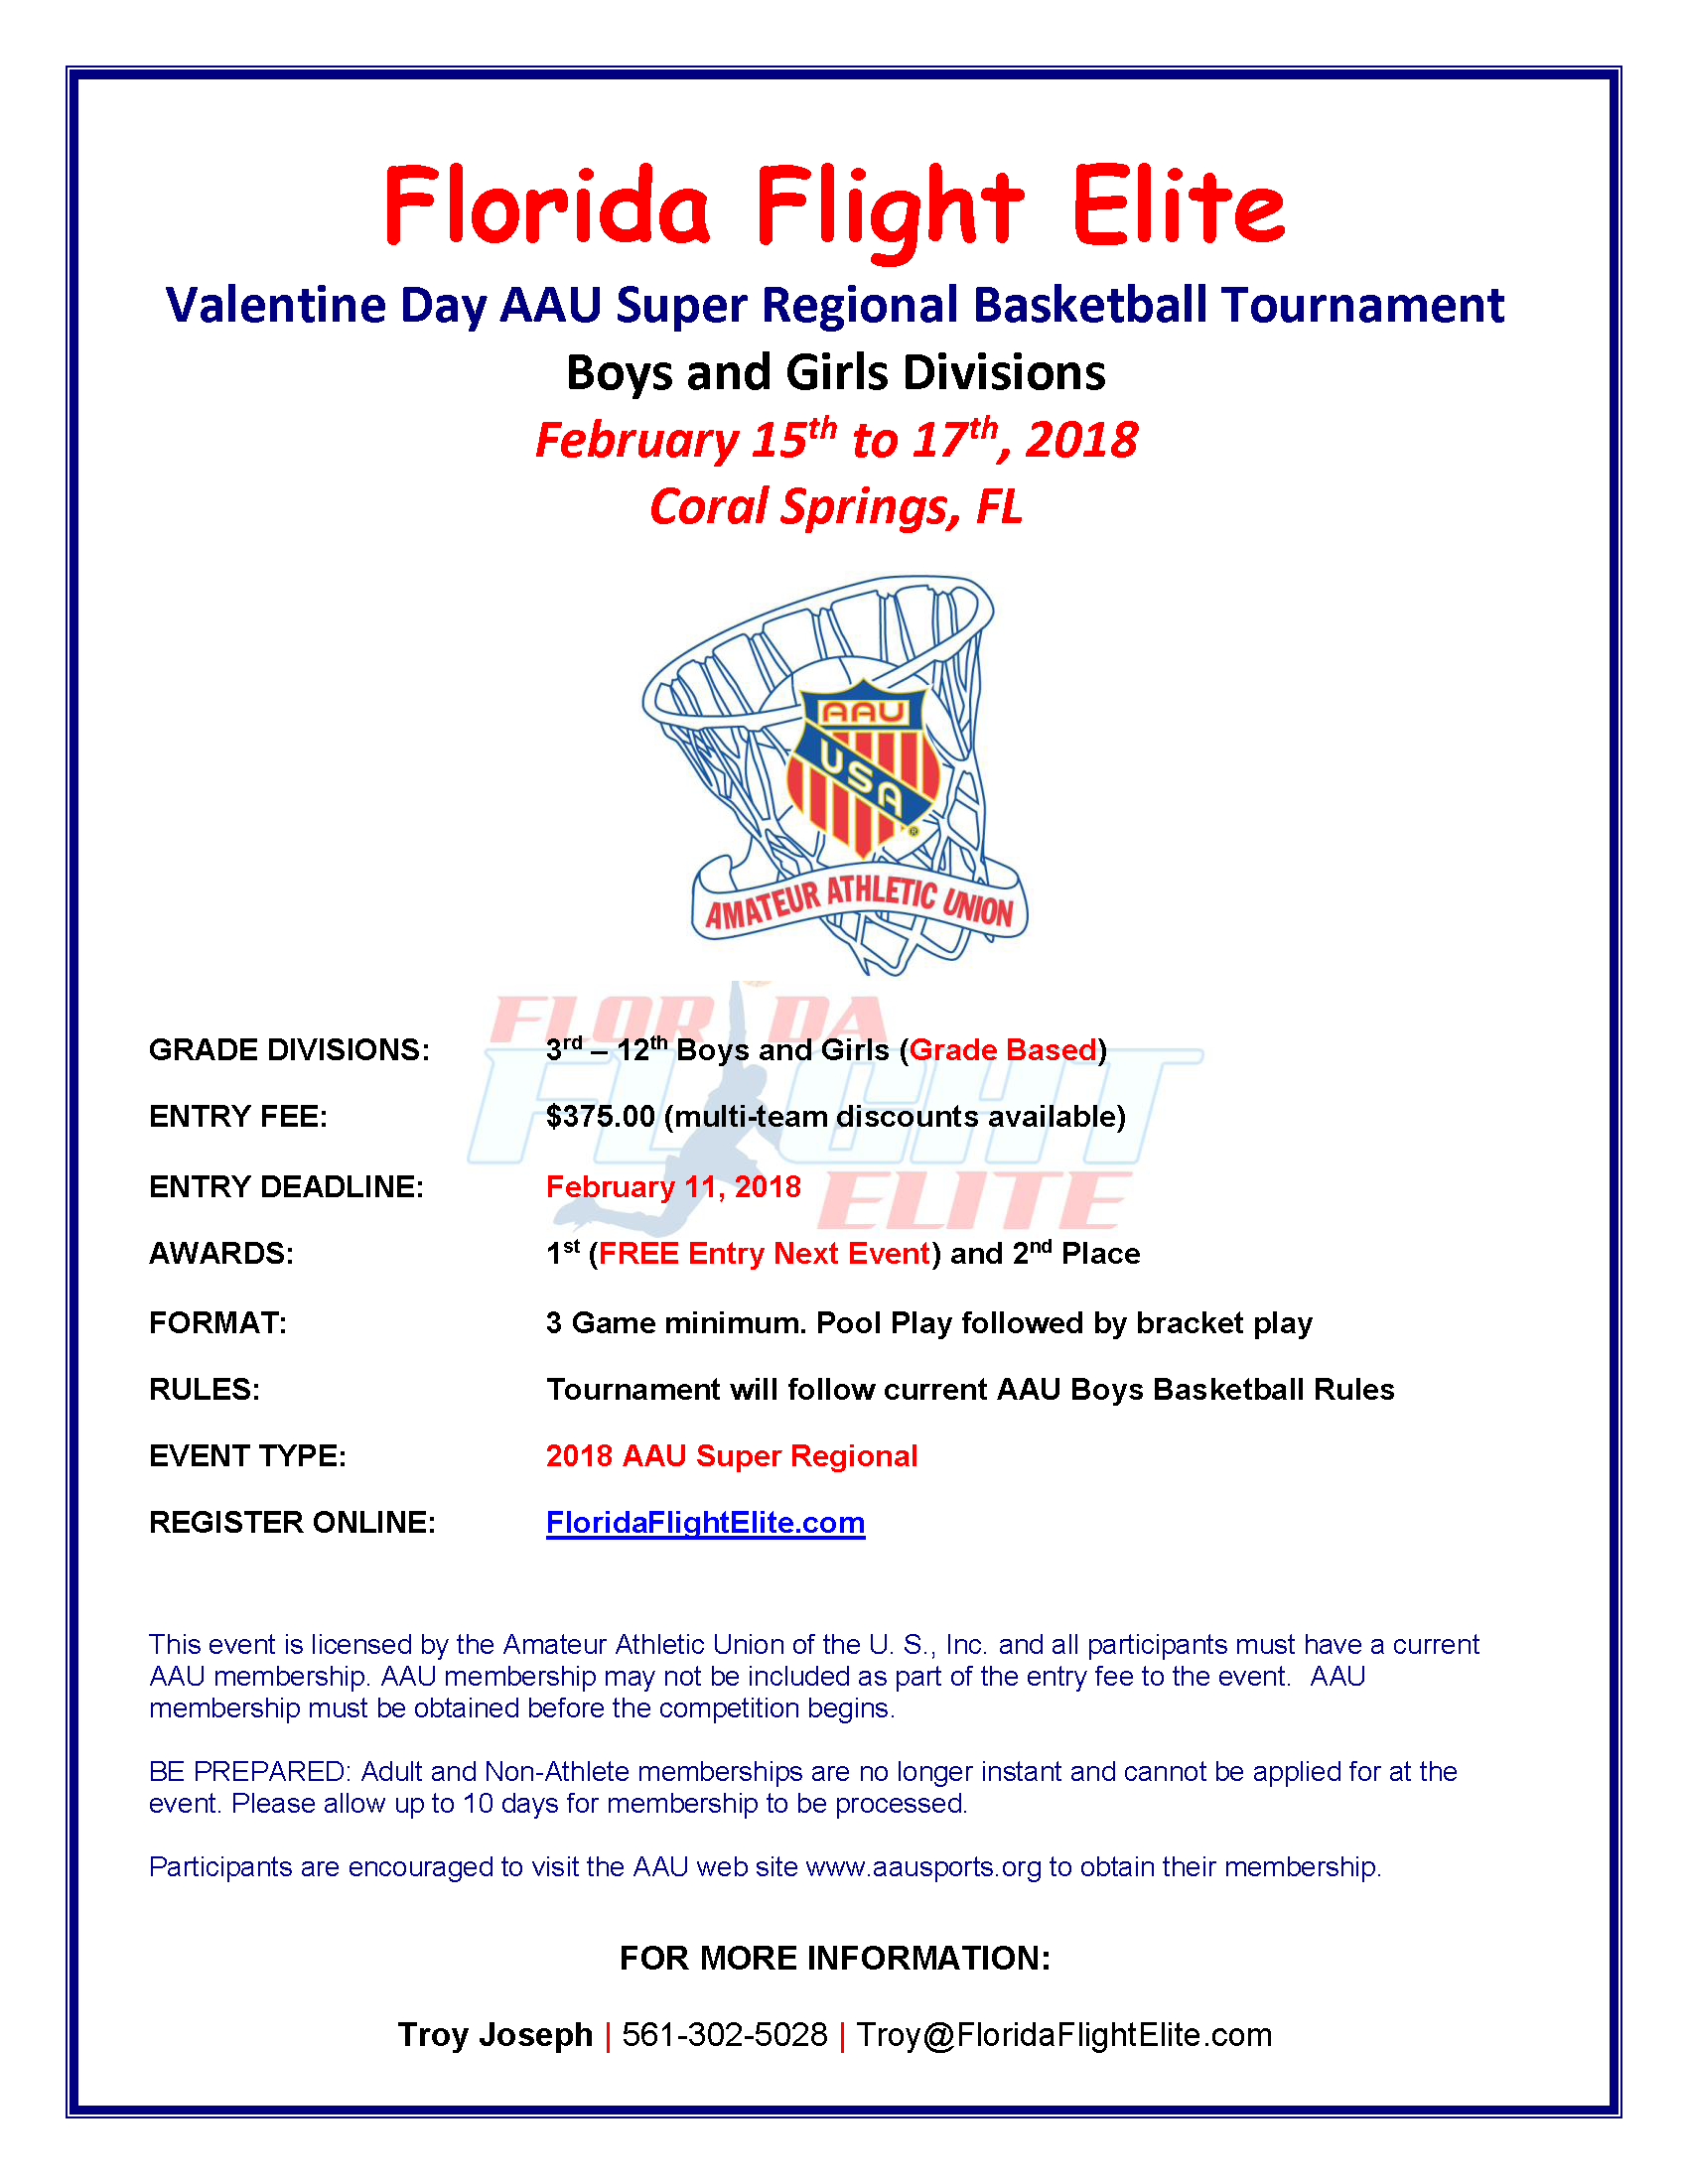 Welcome The 4th Annual Florida Flight Elite Valentine Day AAU Super Regional Basketball Tournament This Event Features Best Talent Throughout